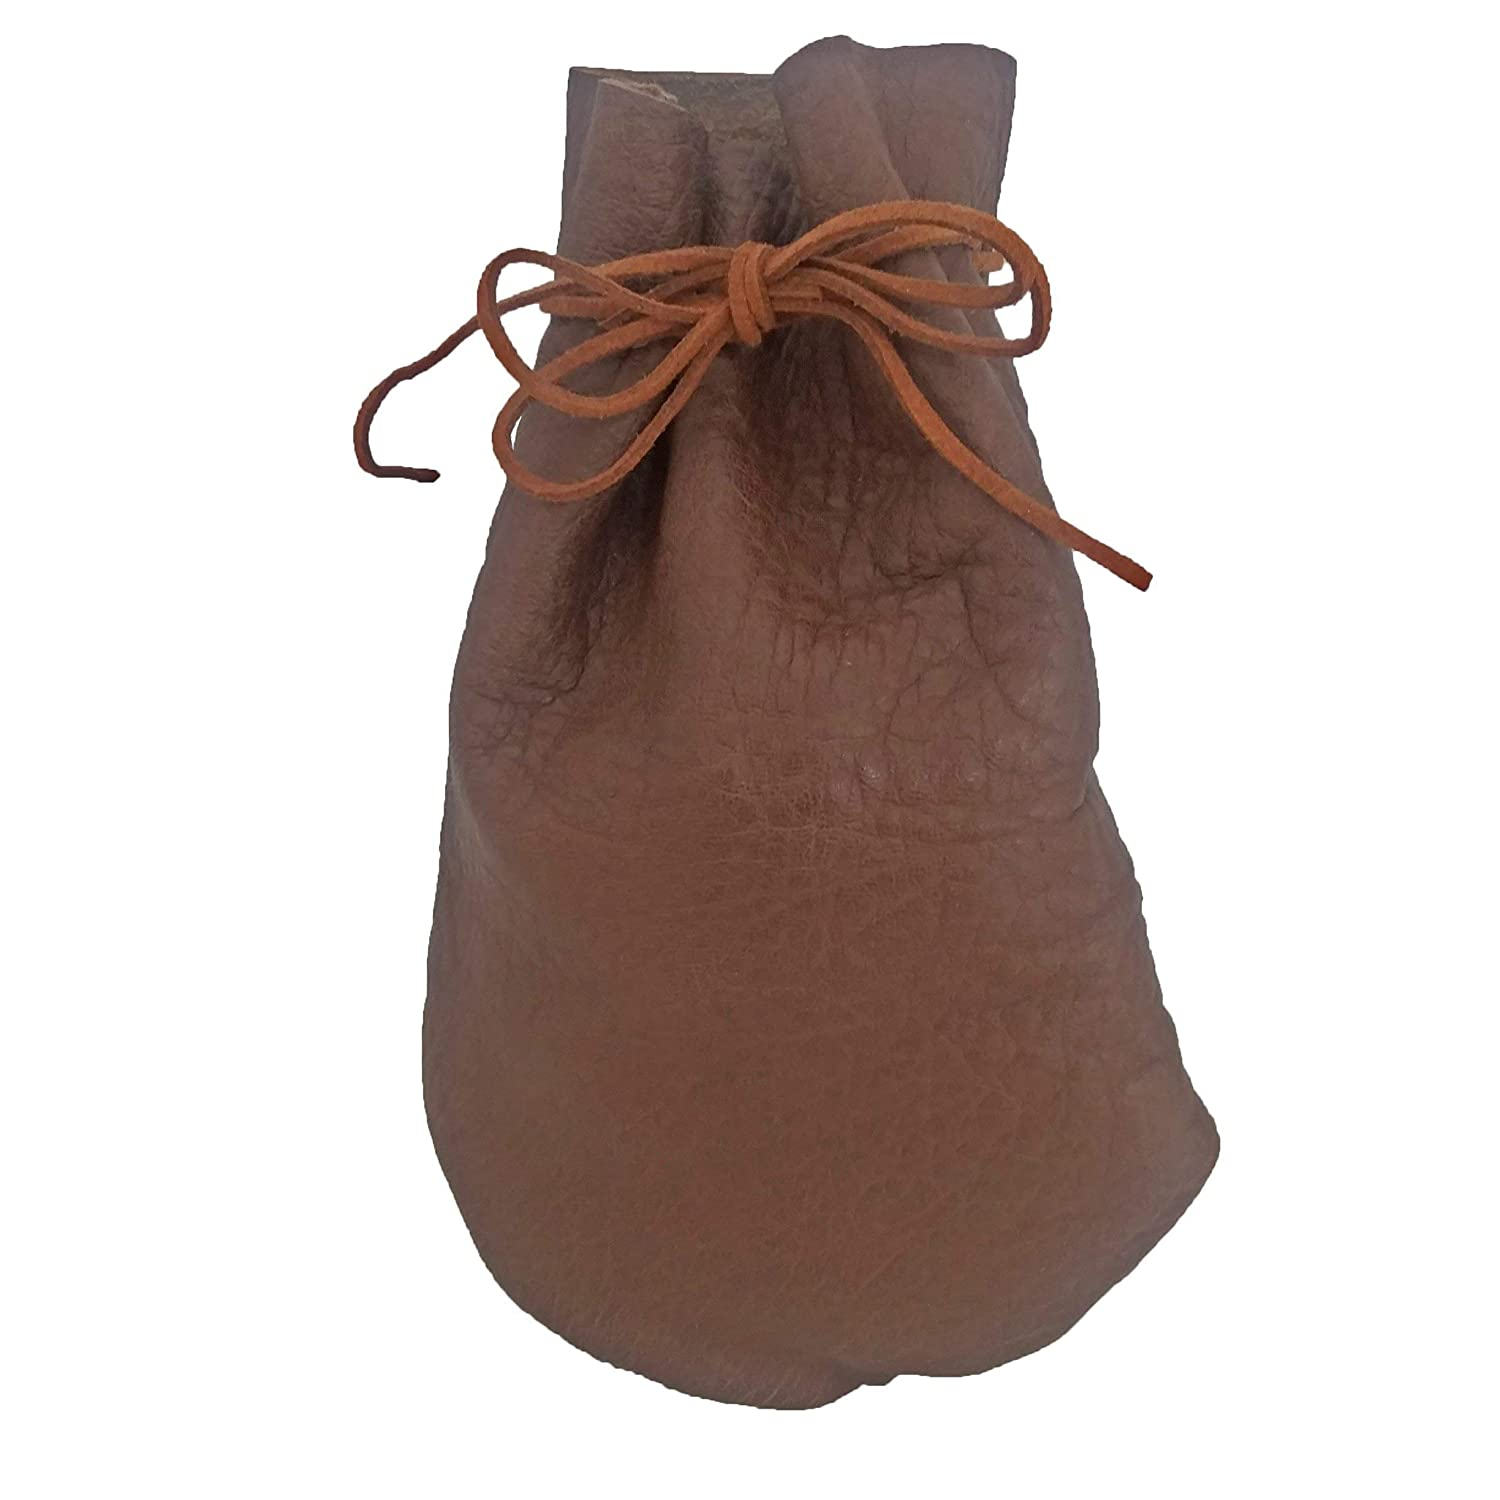 Pouch Drawstring Leather 5 X 7.5 Inches, Grain Pattern Brown